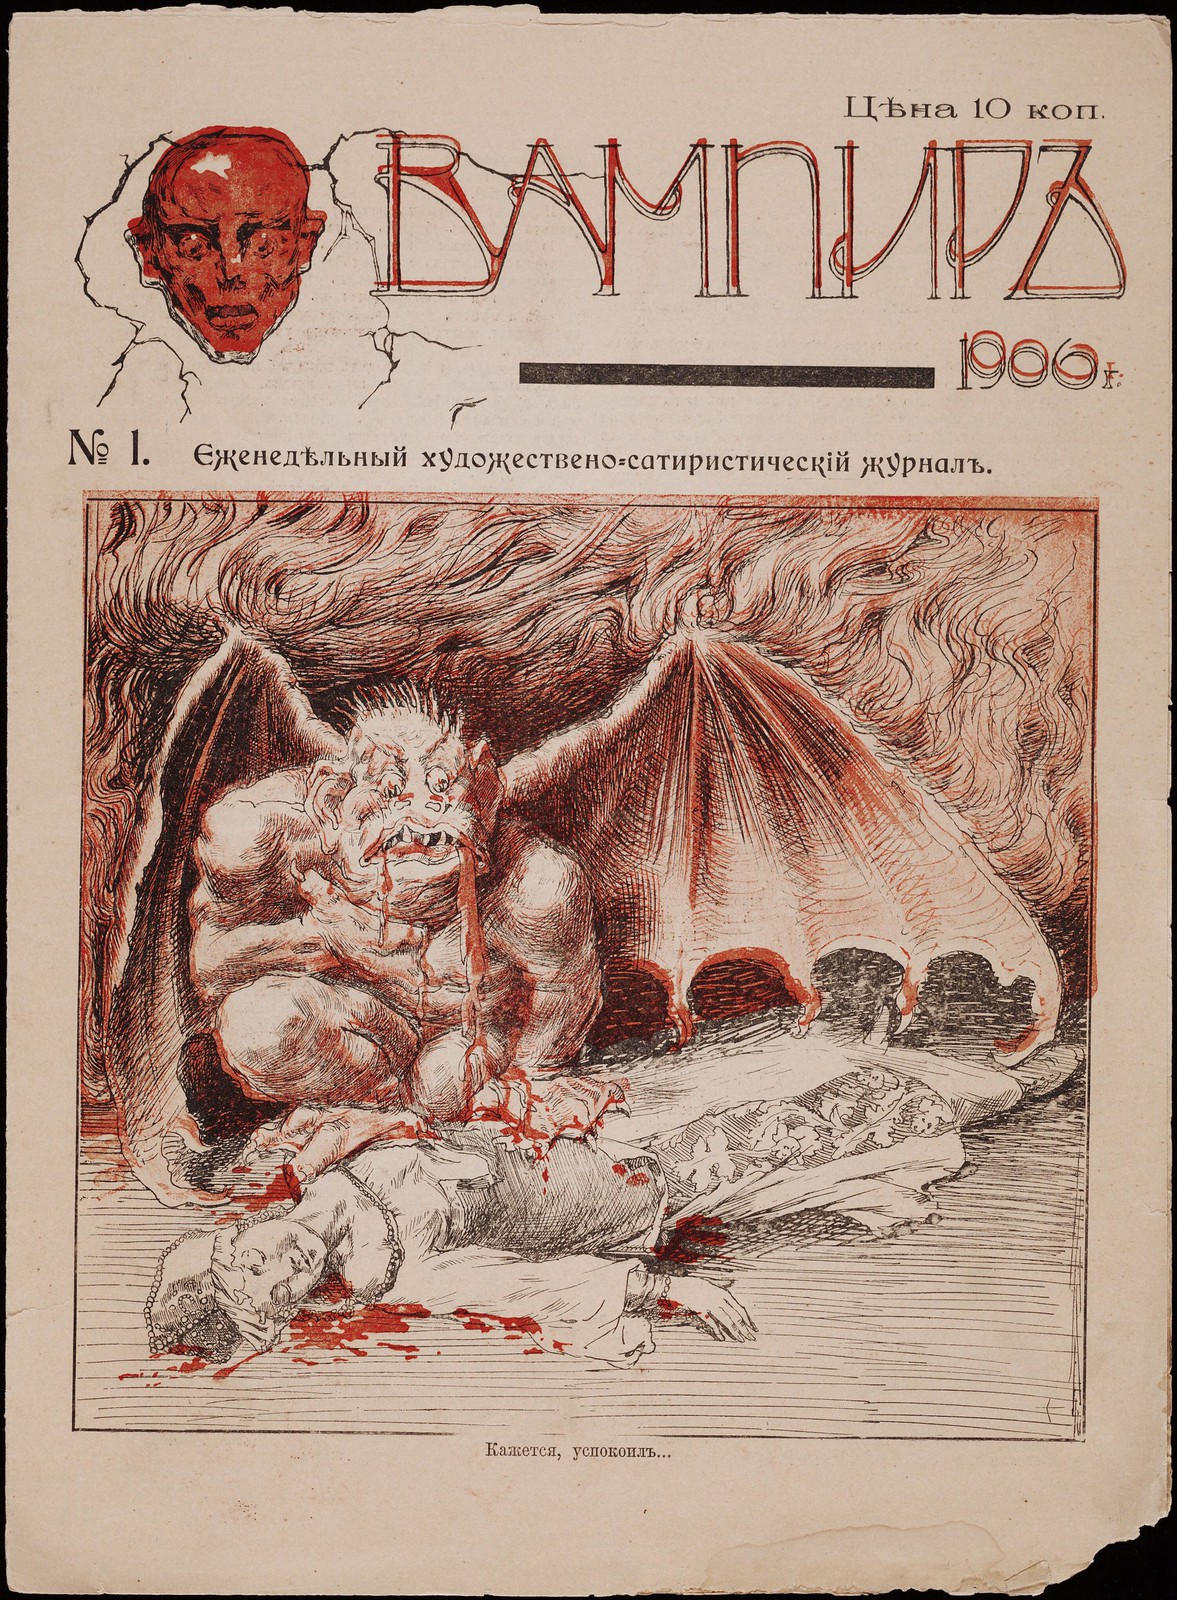 Vampir, Issue 1, 1906